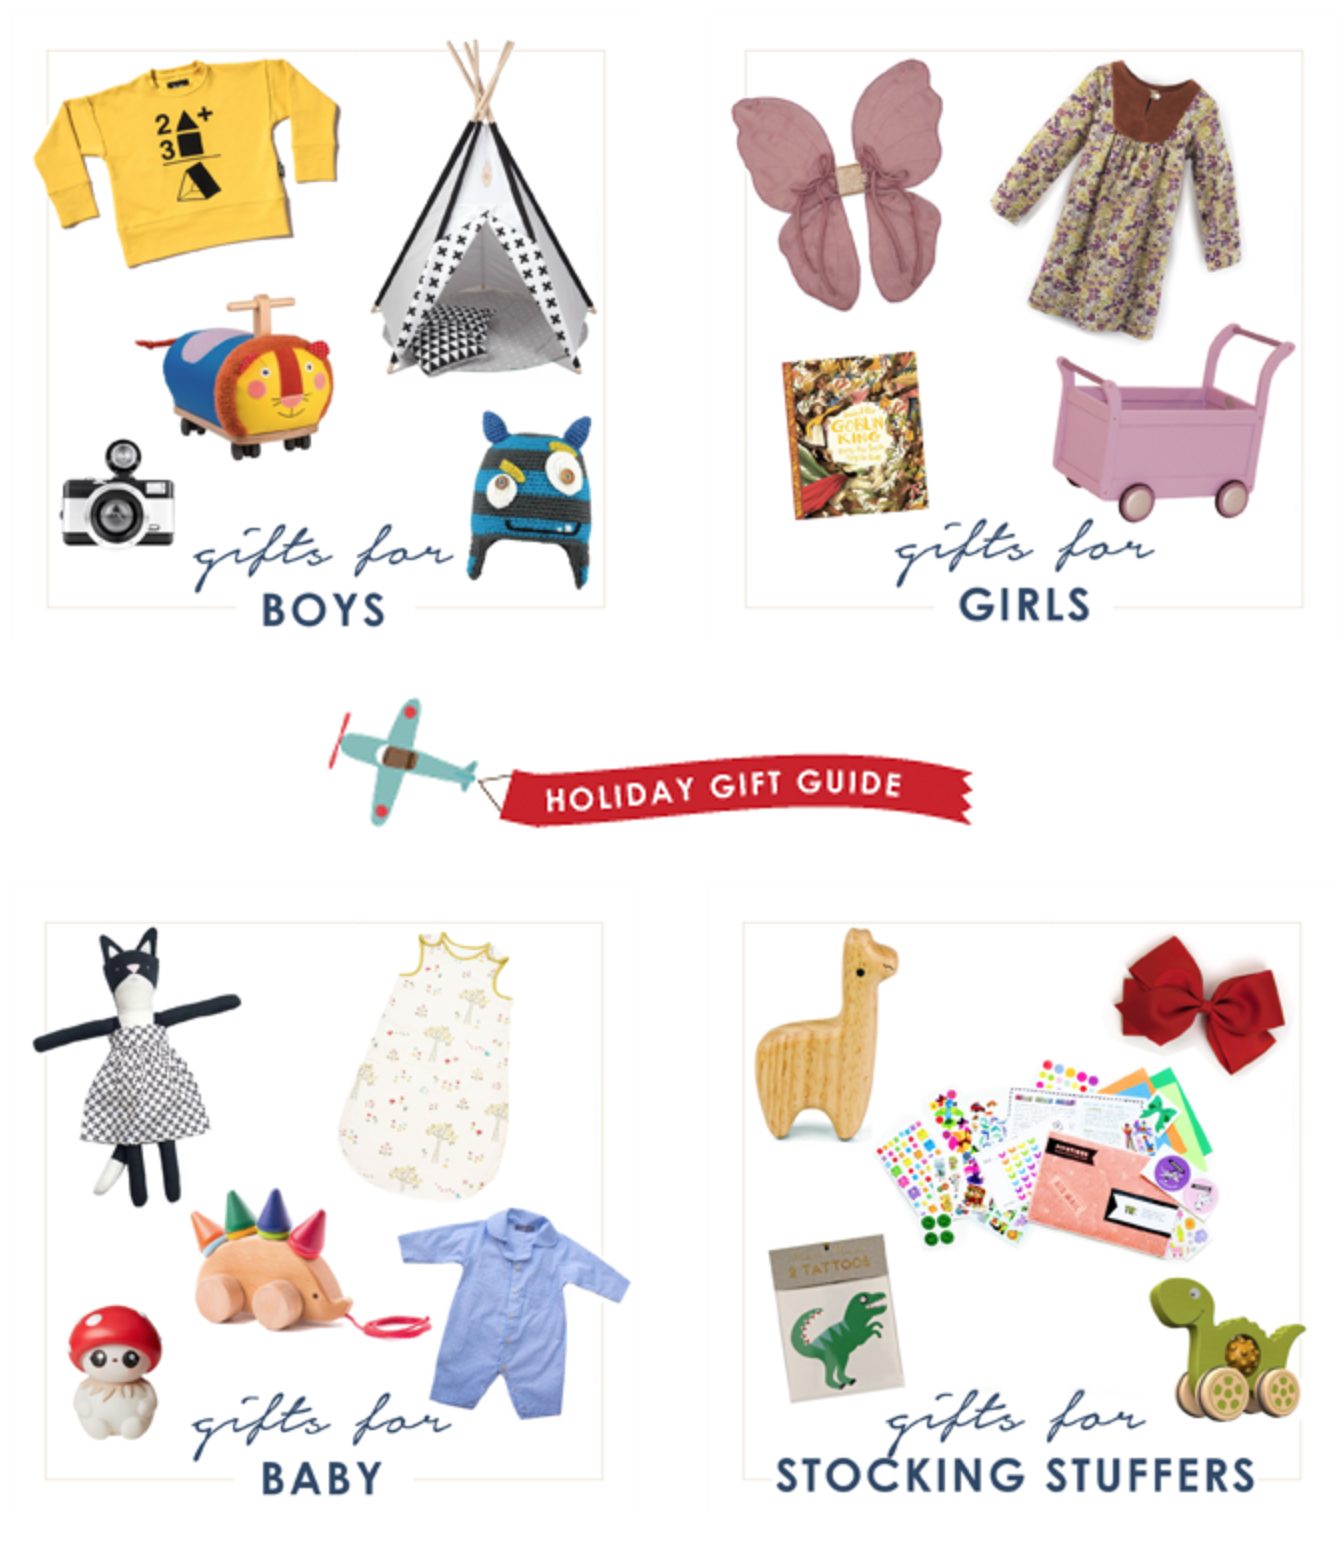 Babyccino Kids holiday gift guides 2015